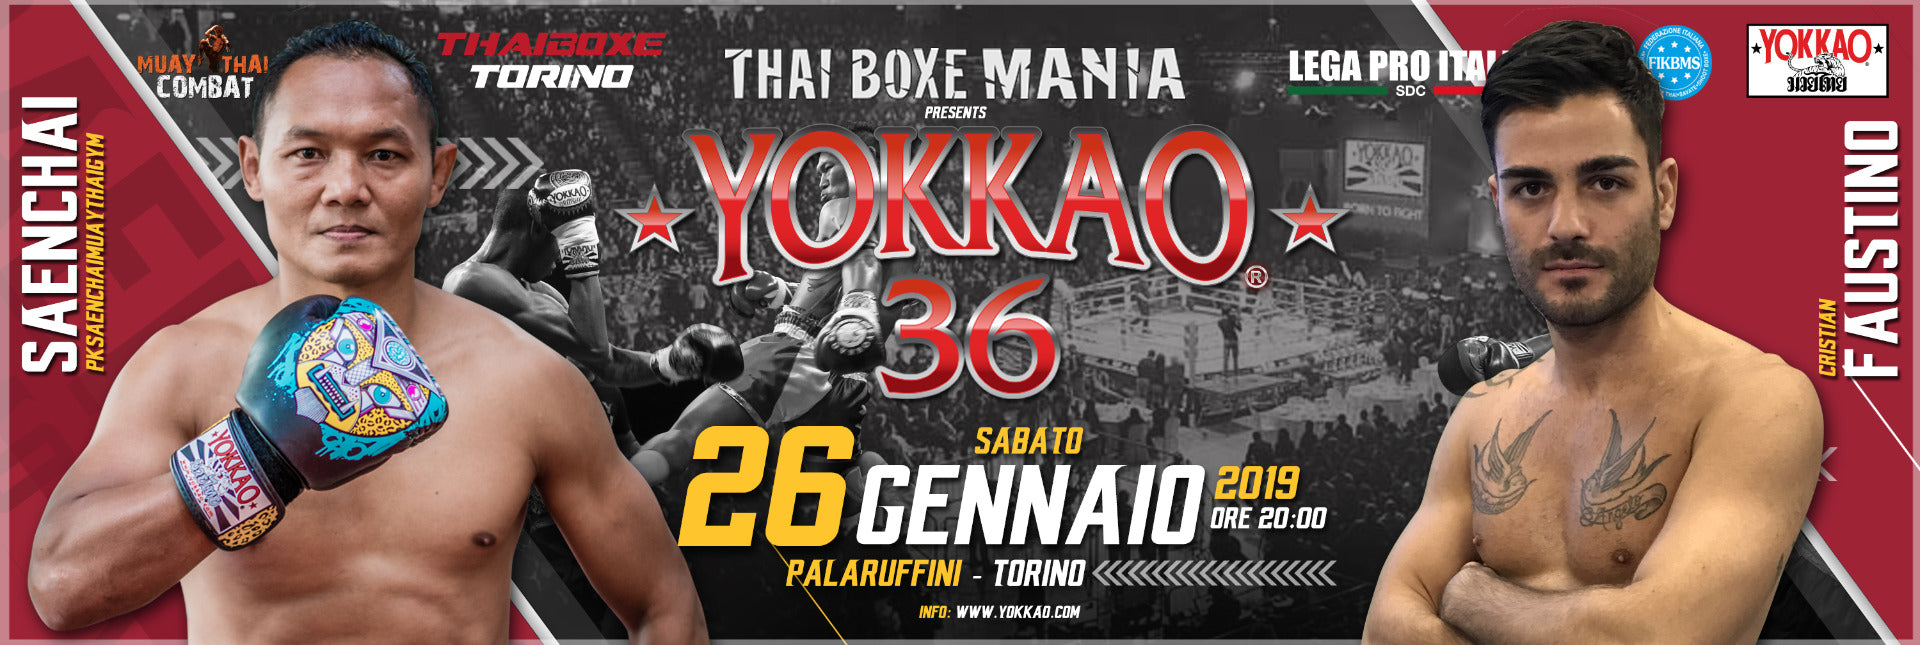 YOKKAO 36 Muay Thai Results